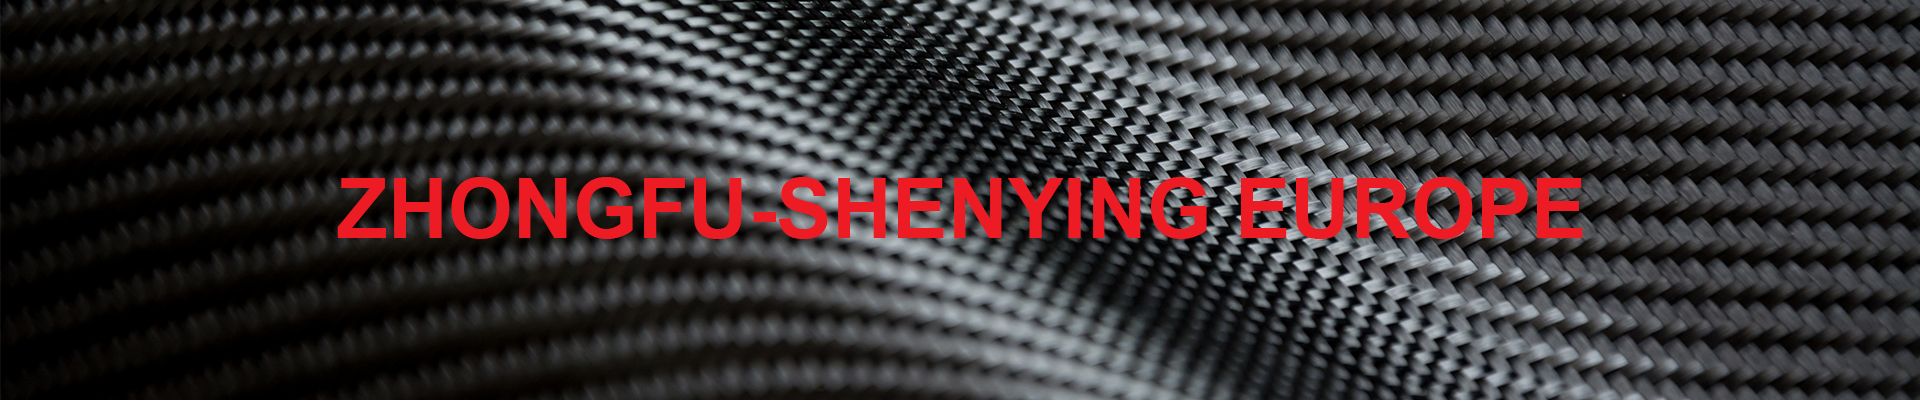 Zhongfu Shenying Europe - Header